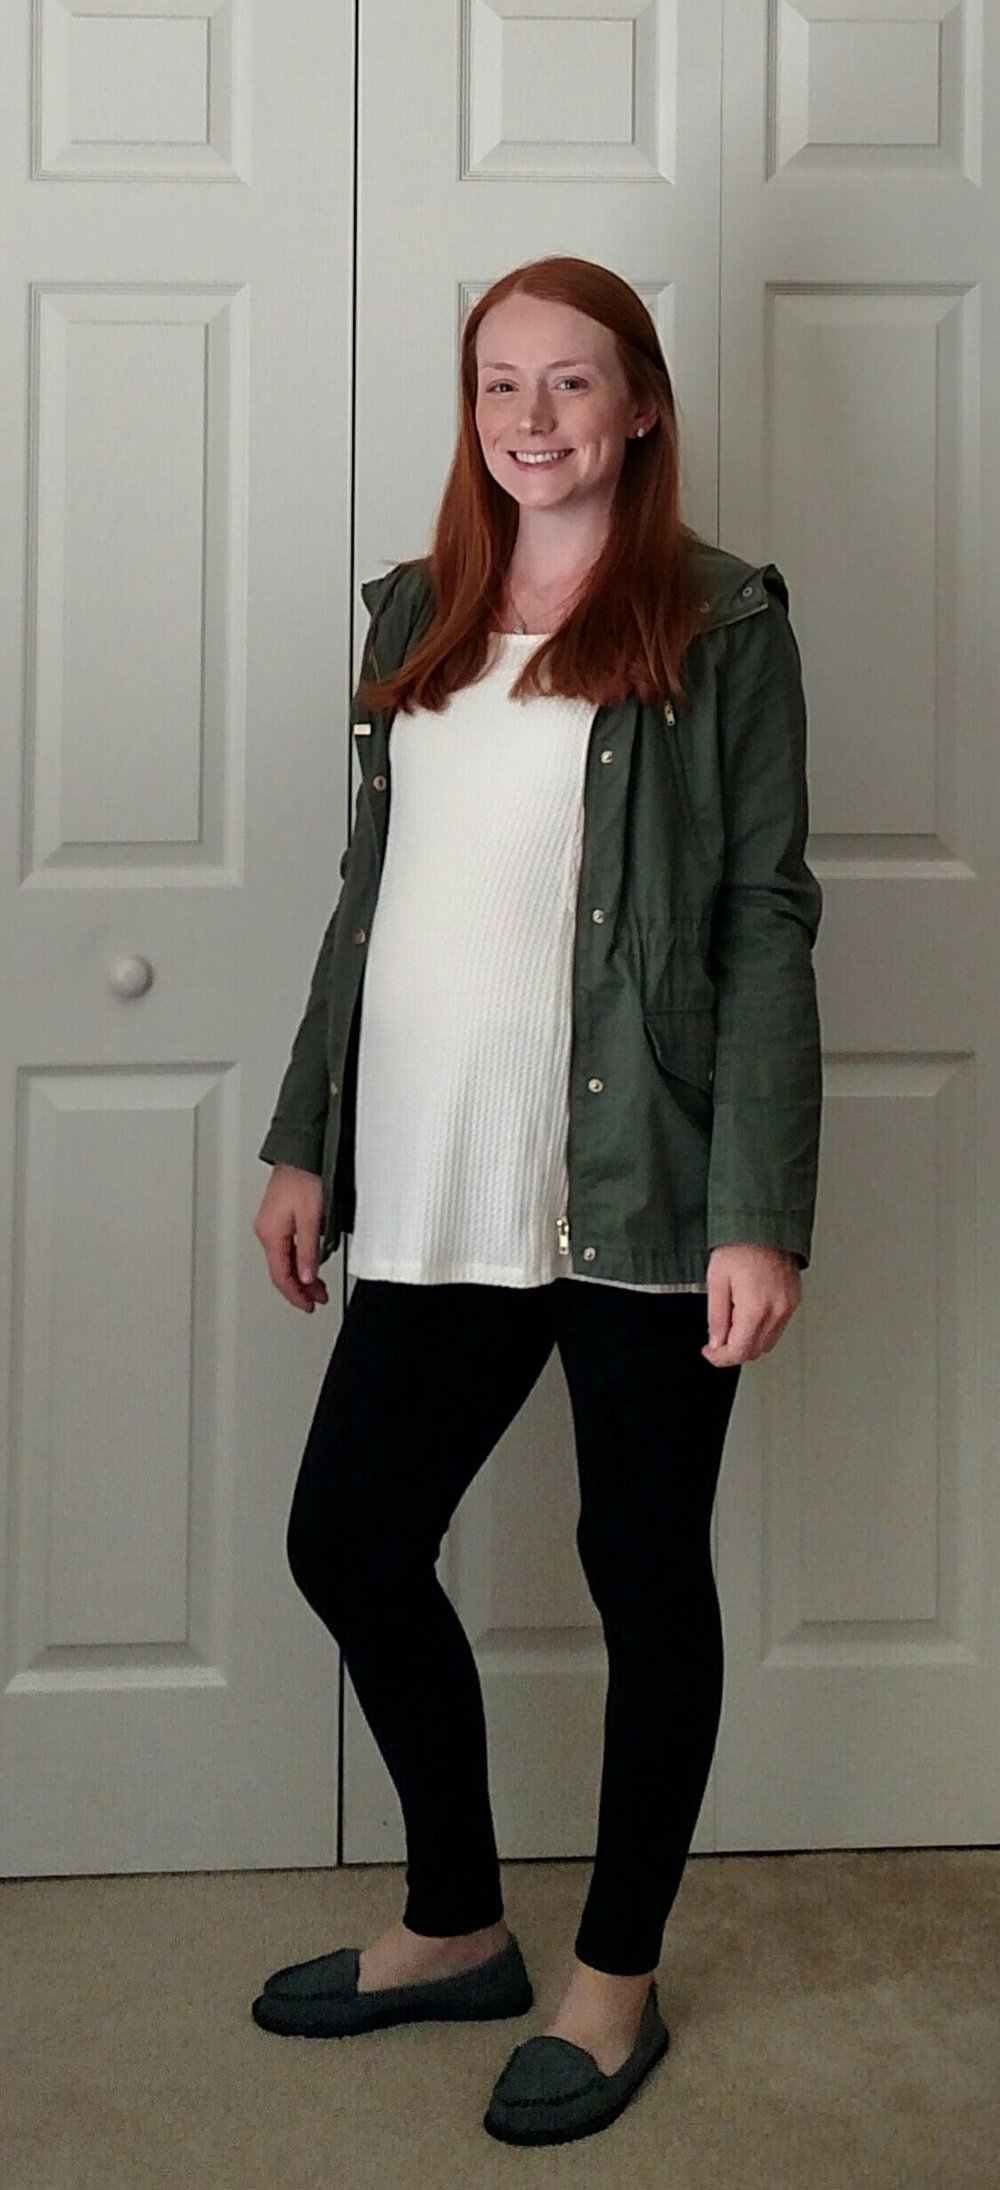 Tunic Top + Leggings + Slip On Sneakers + Utility Jacket - Having a hard time styling your #leggings Moms just like you modeling how to wear leggings - non-frumpy, mom friendly, cute, chic fashion!  #mom #fashion #outfits #tips # ideas #easy #clothes #style